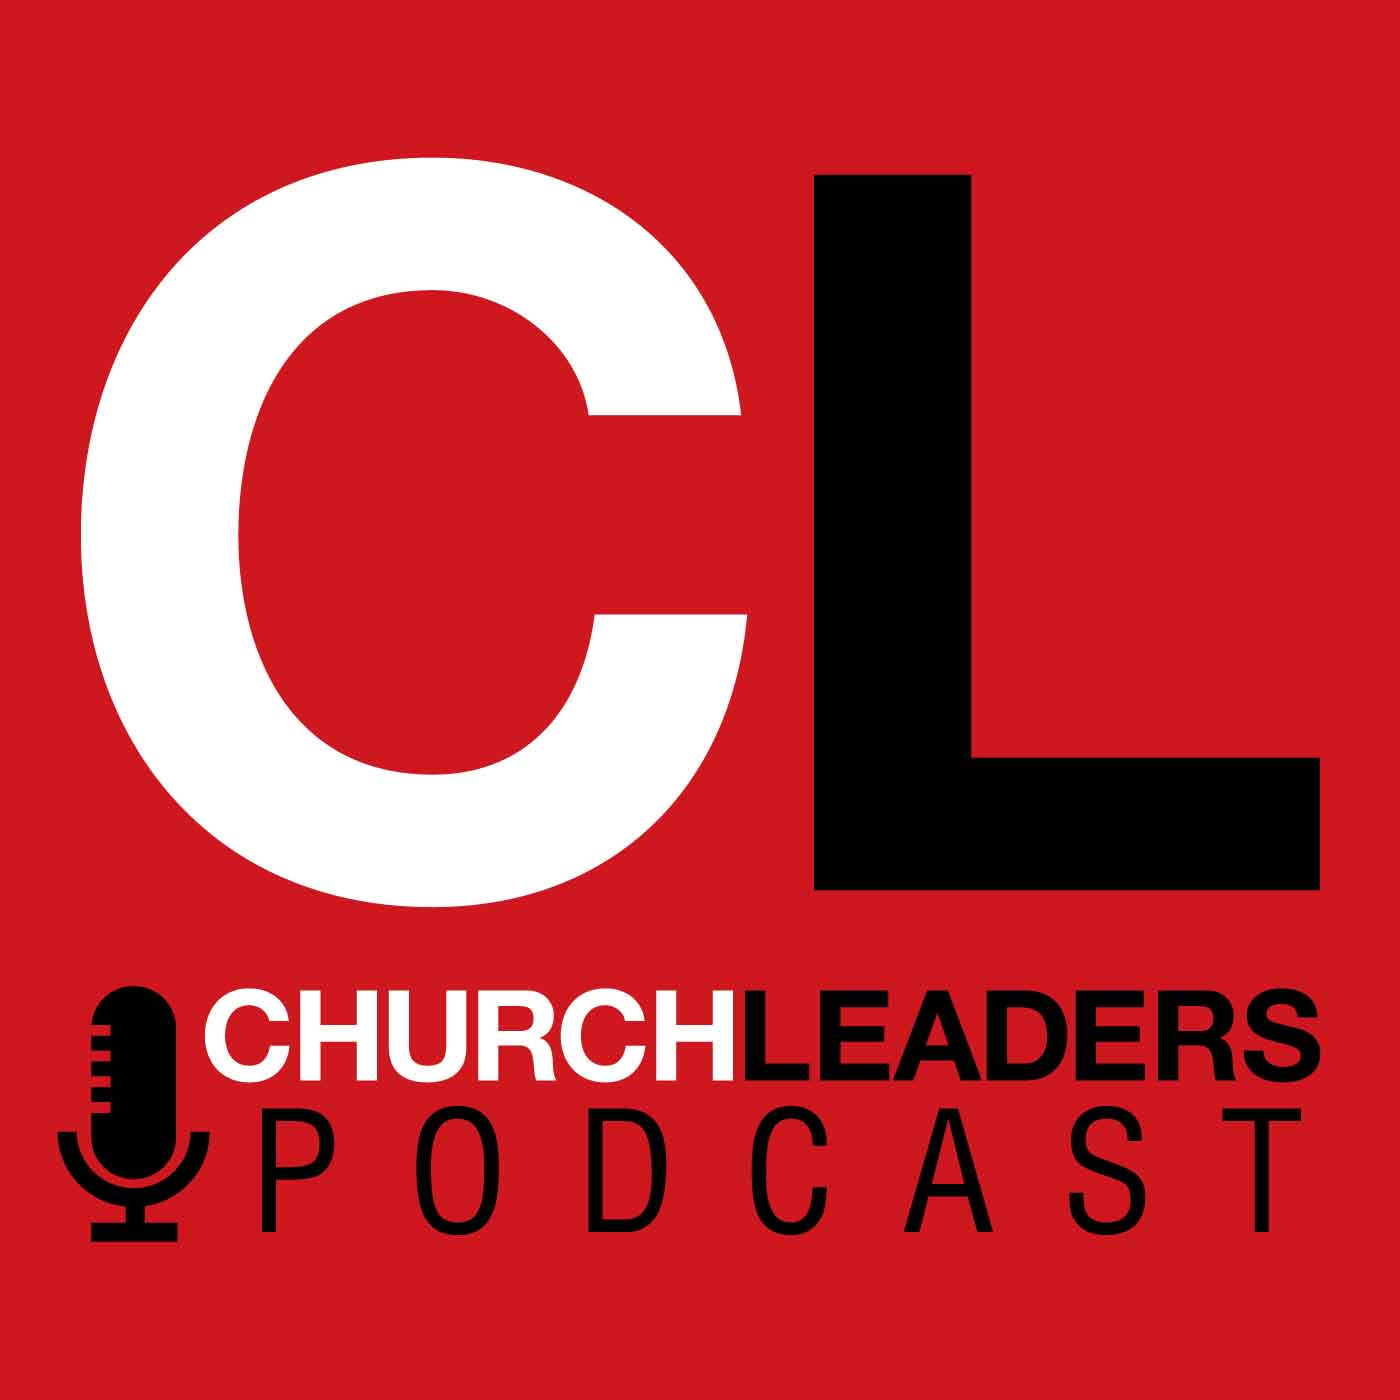 The ChurchLeaders Podcast show art